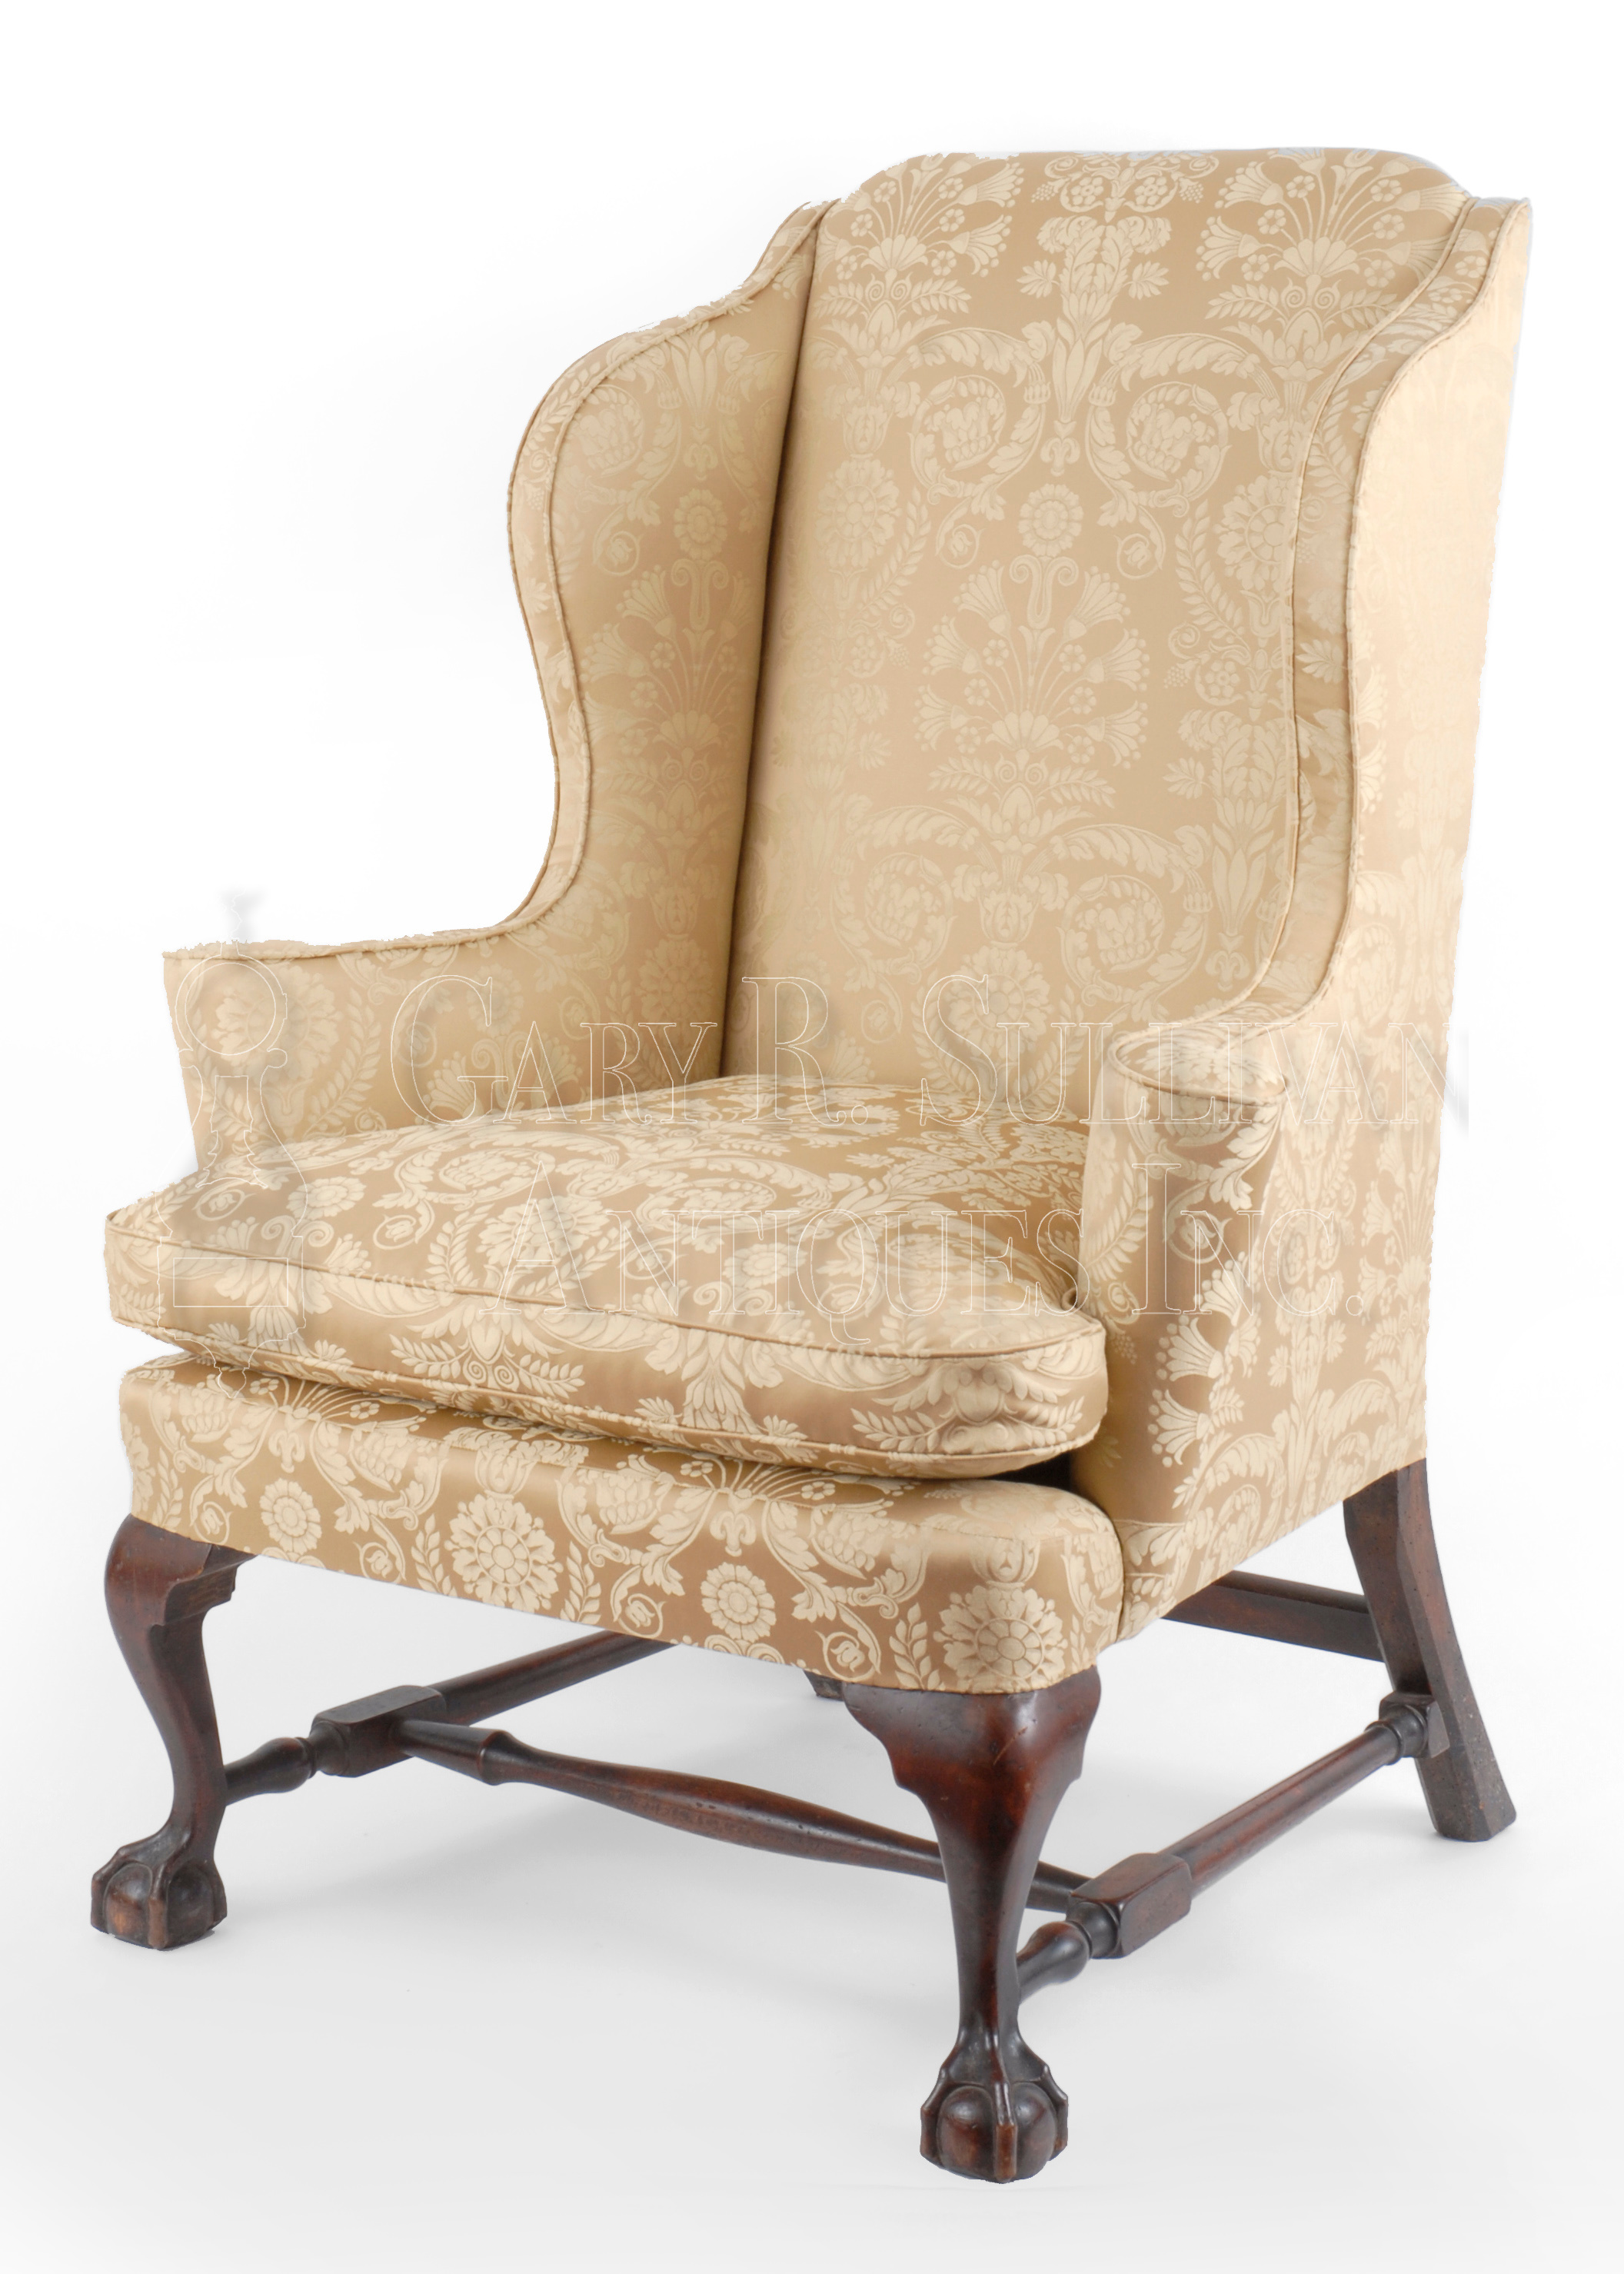 View In Browser Or Download Image. Chippendale Wingchair